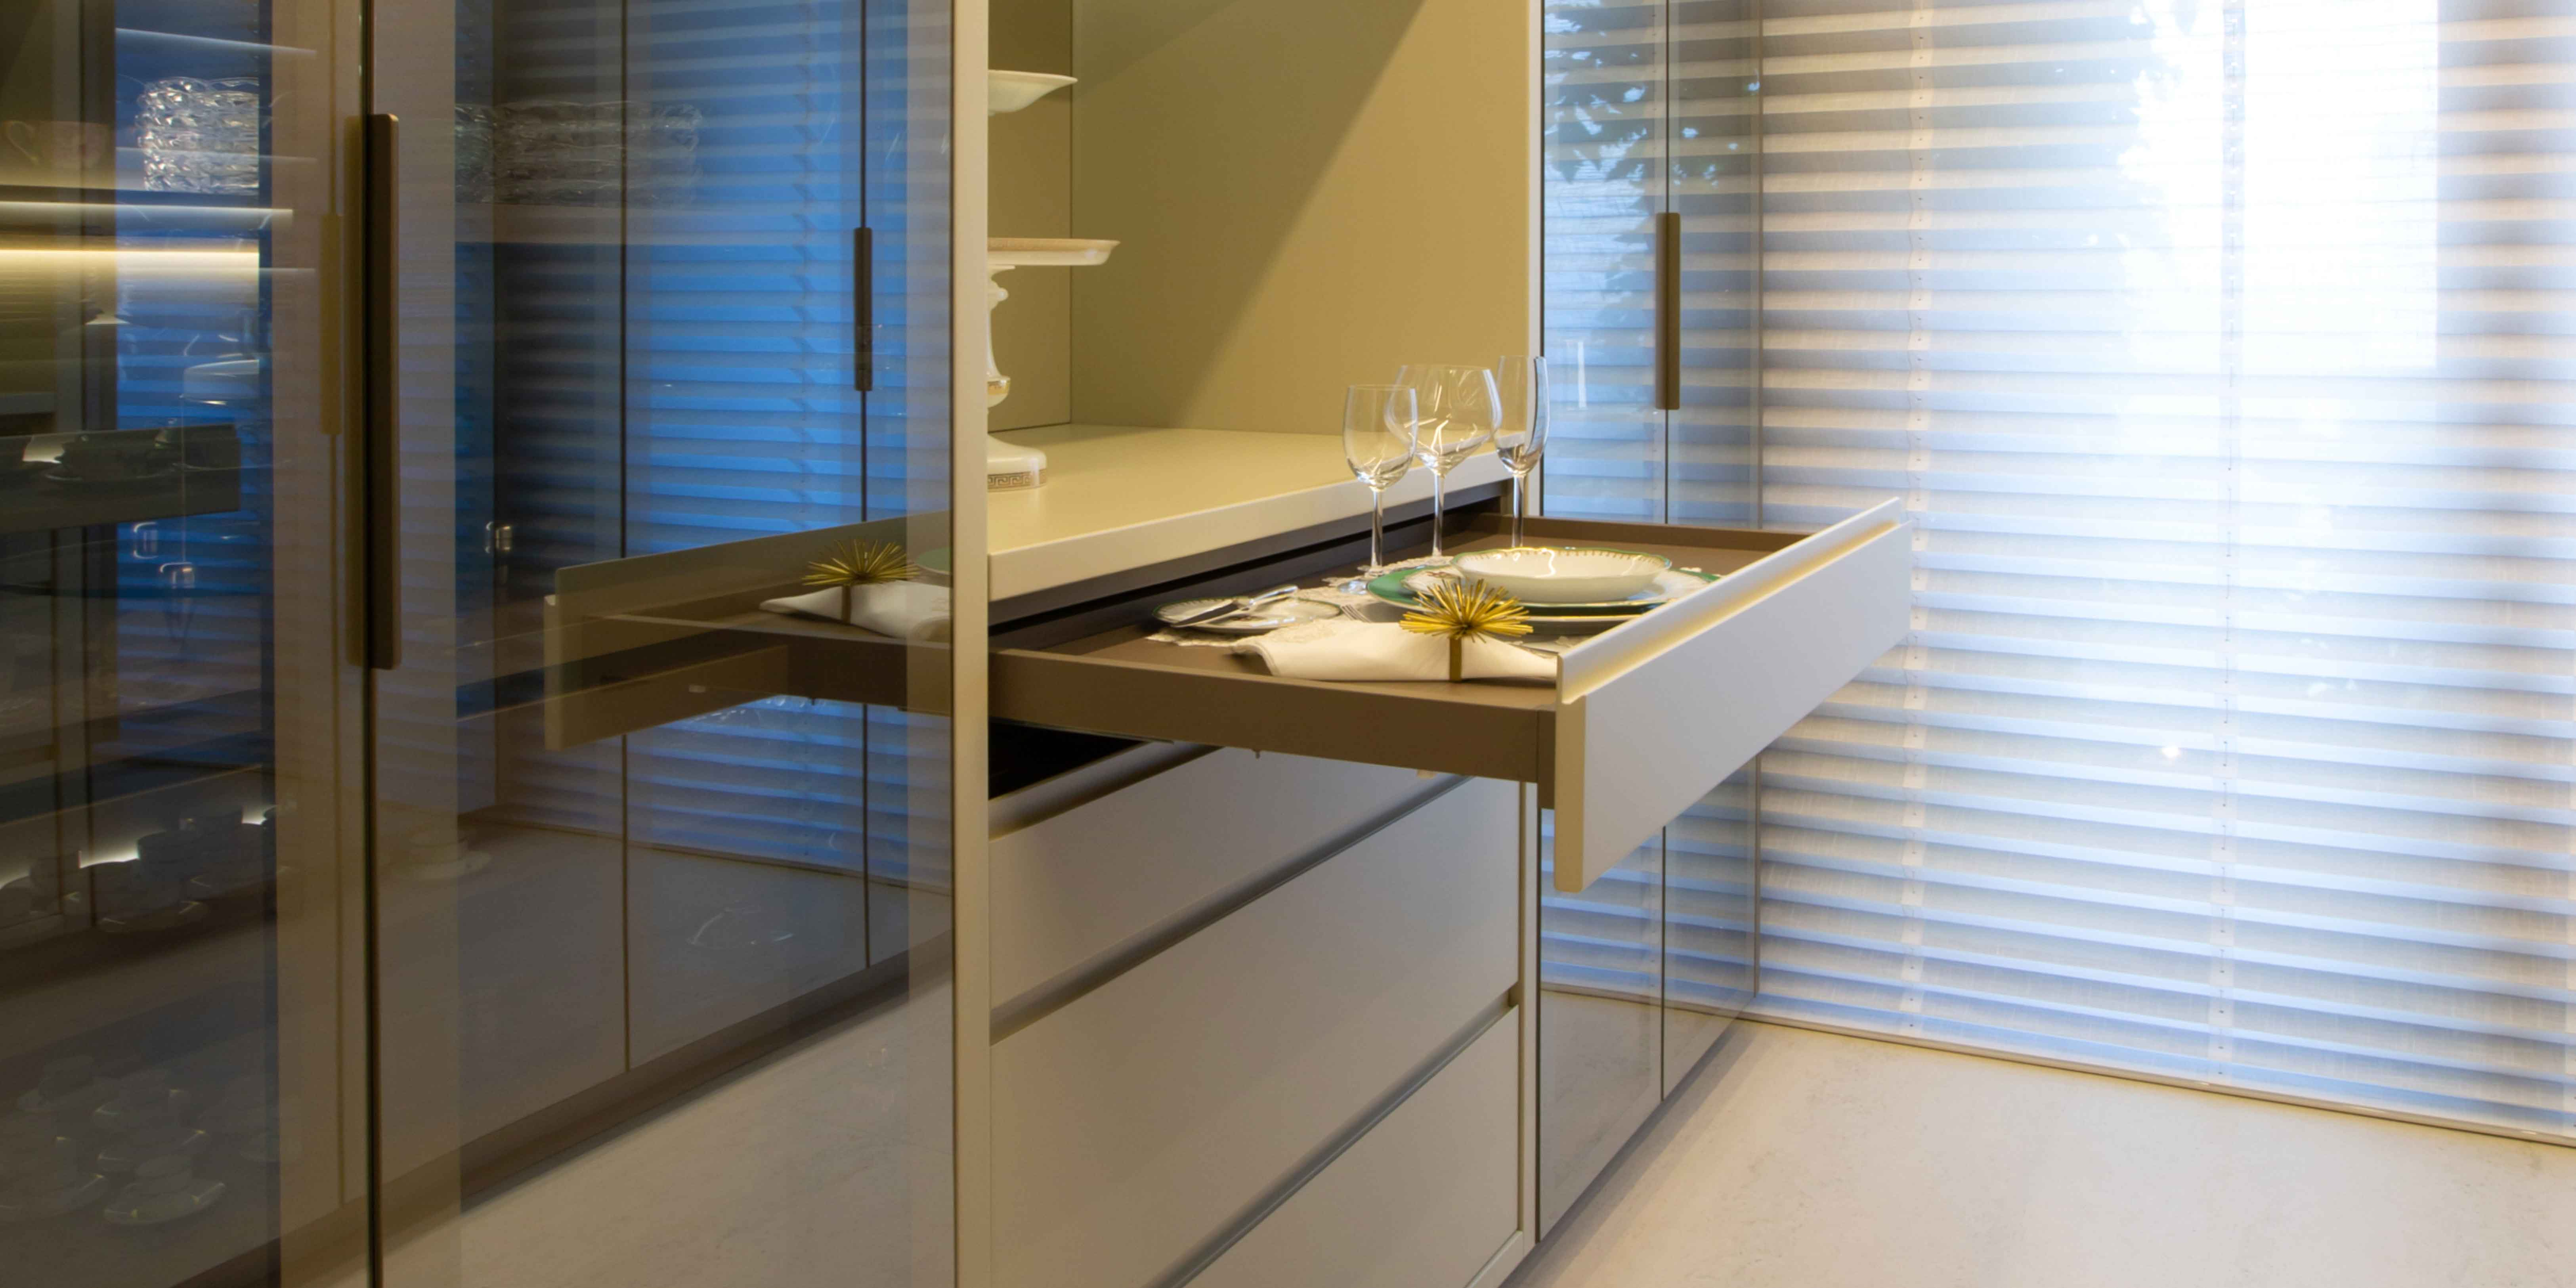 Perfect Blend Of Modern And Impeccable Quality Kitchens. Tailor-Made Kitchens For Homes With Highly Architectonical.